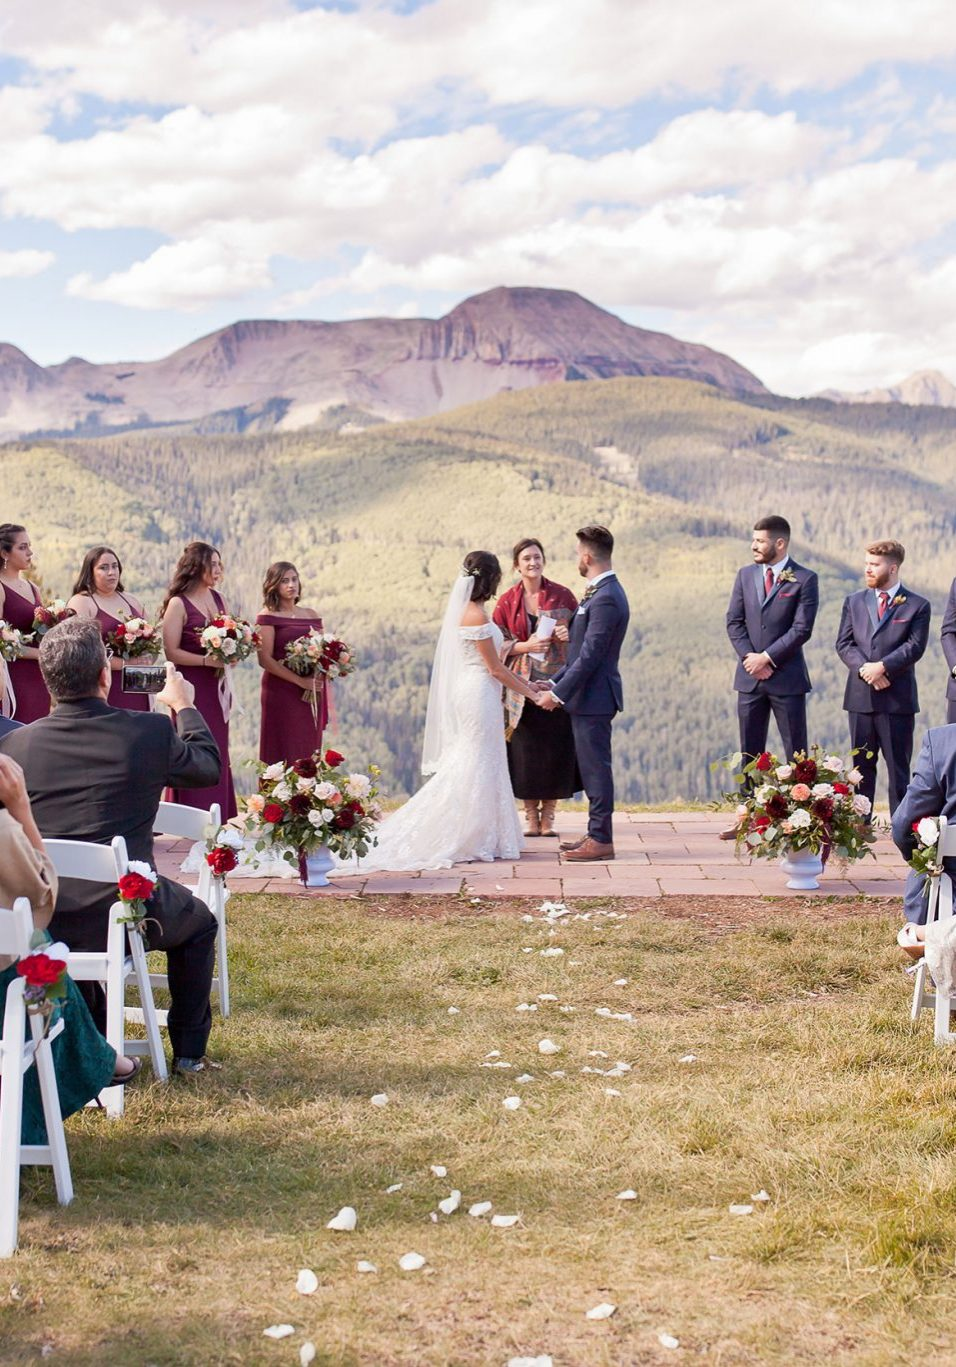 Mountaintop ceremony at Purgatory Resort, Durango Colorado